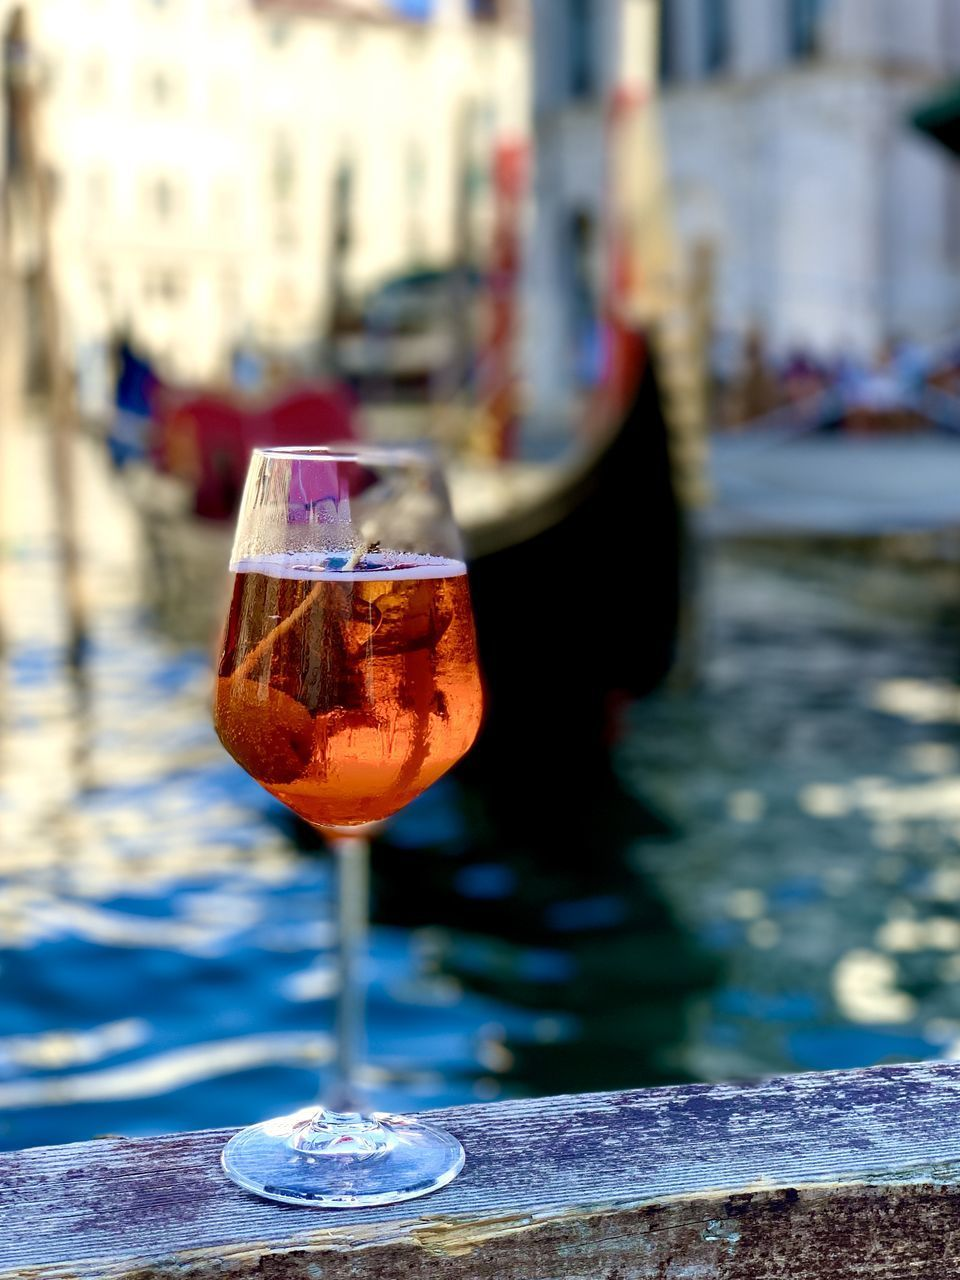 CLOSE-UP OF WINE GLASS ON TABLE AGAINST CANAL